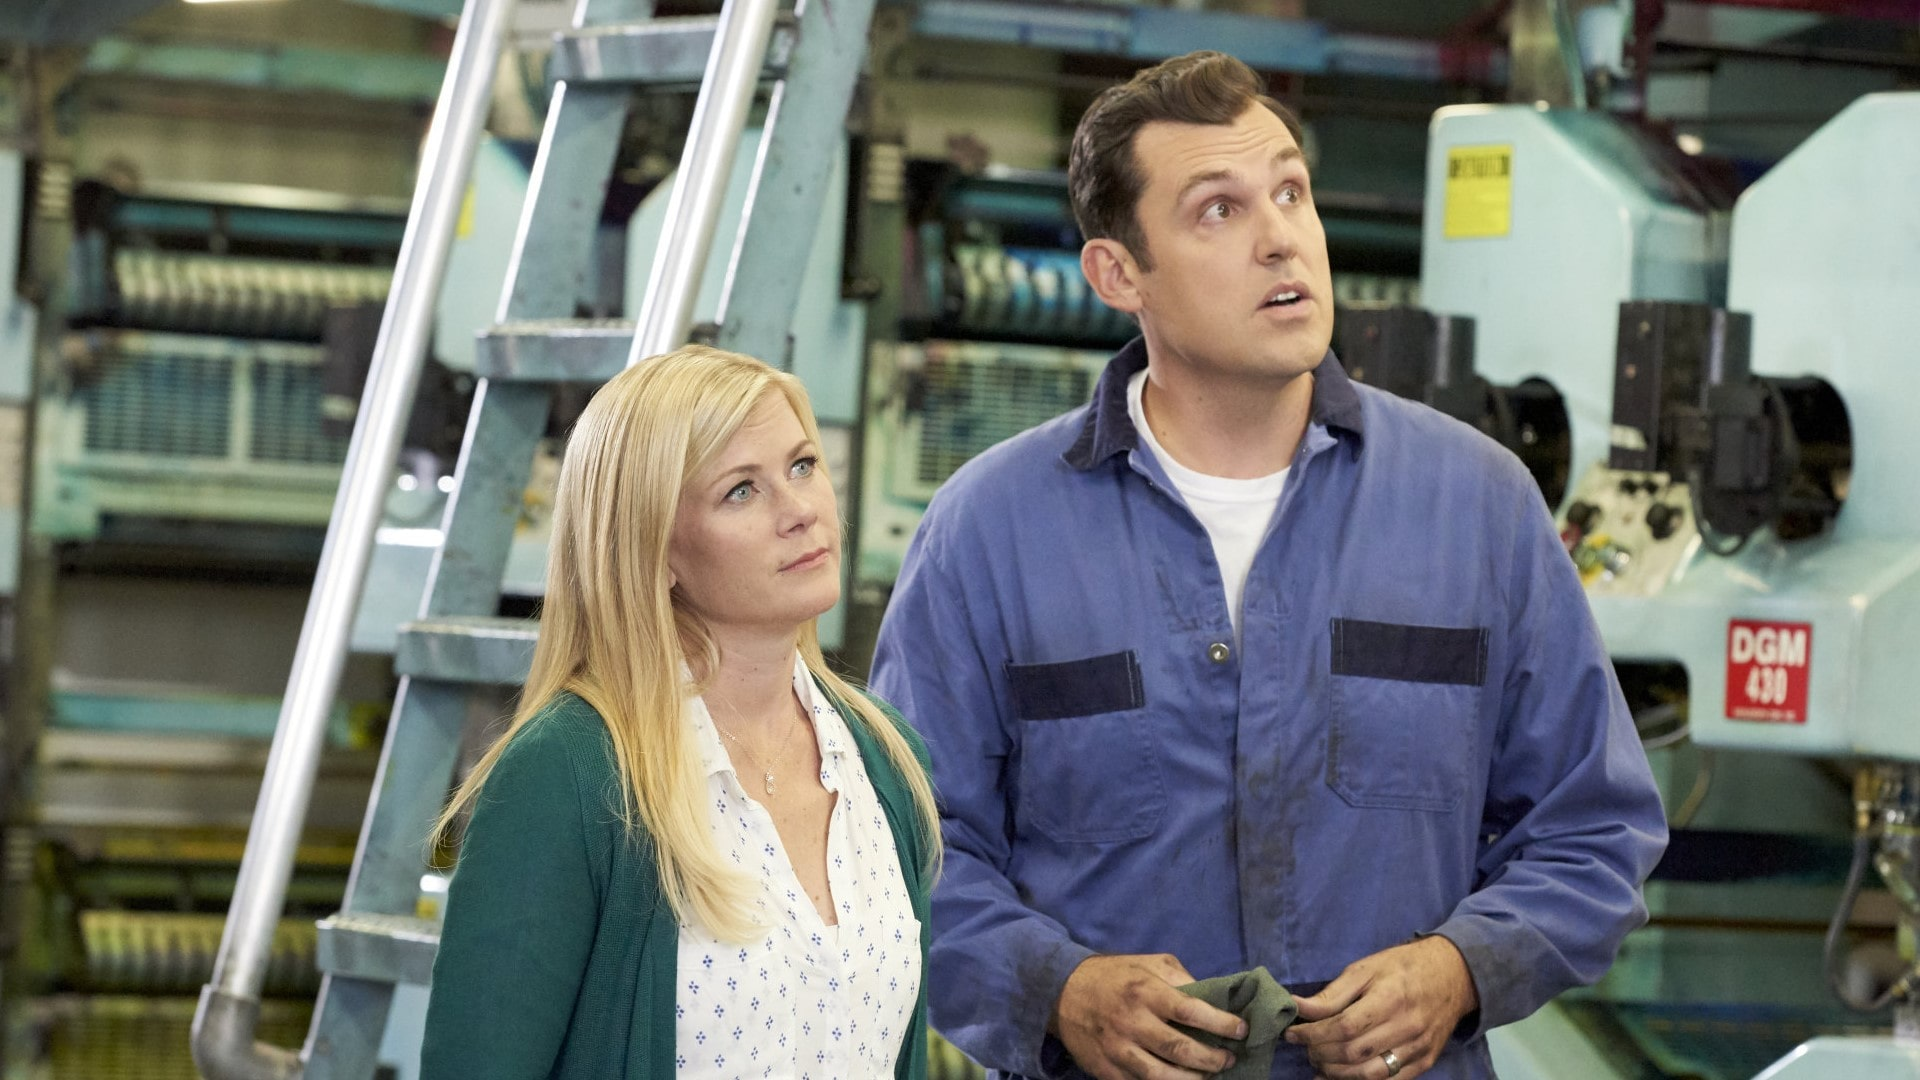 Alison Sweeney Oops the chronicle mysteries: the wrong man - best movies & tv